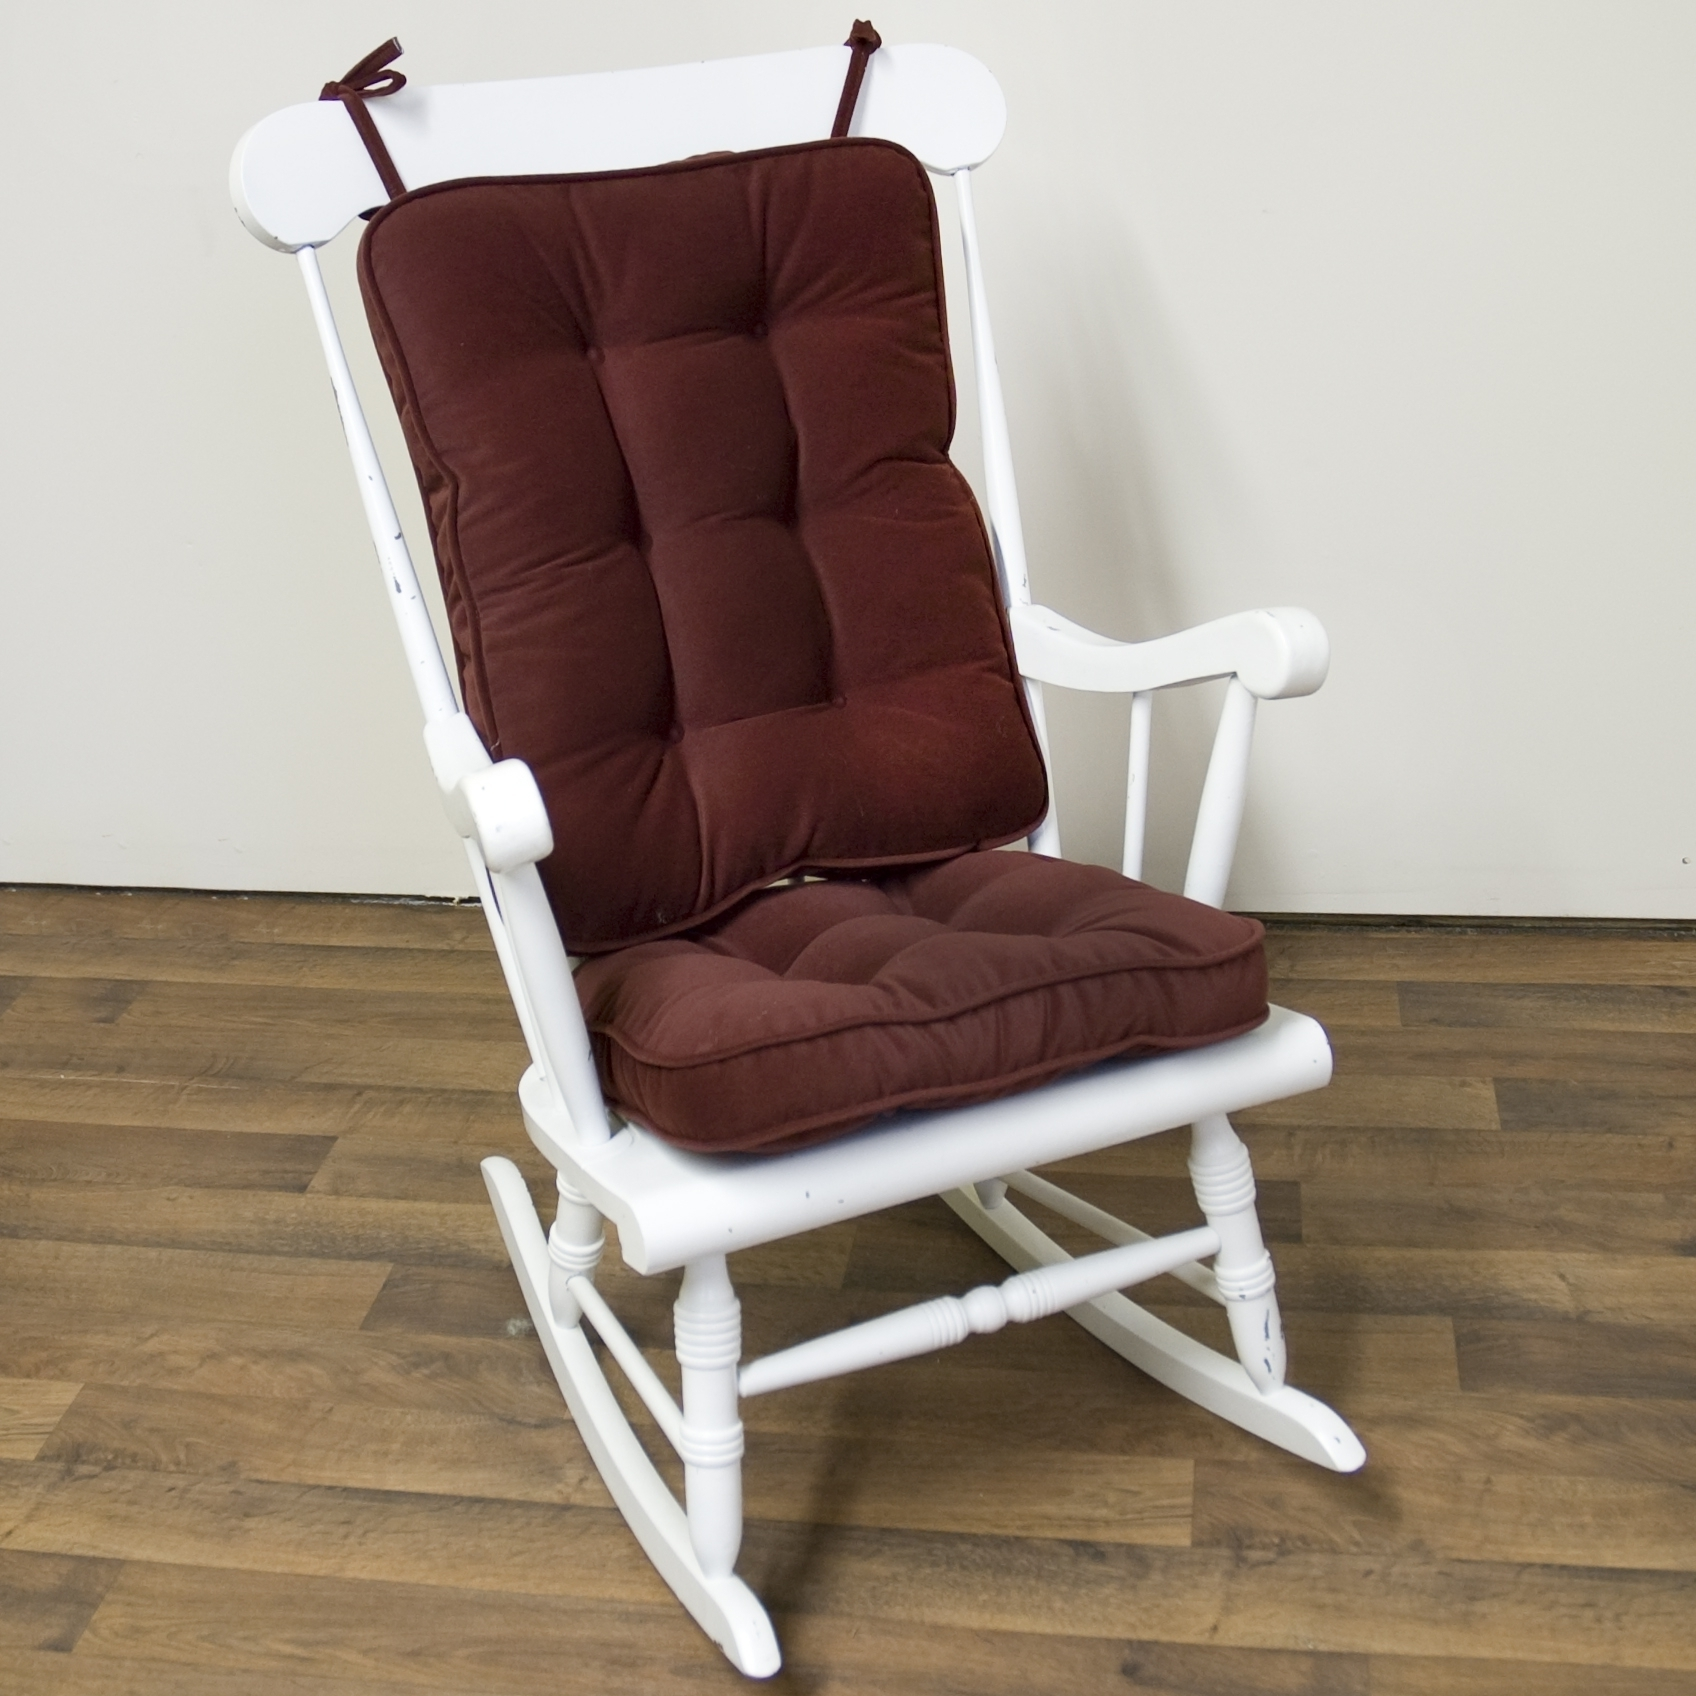 Latest Rocking Chair Cushions Walmart Uncategorized At Outdoor Design Intended For Walmart Rocking Chairs (View 7 of 20)